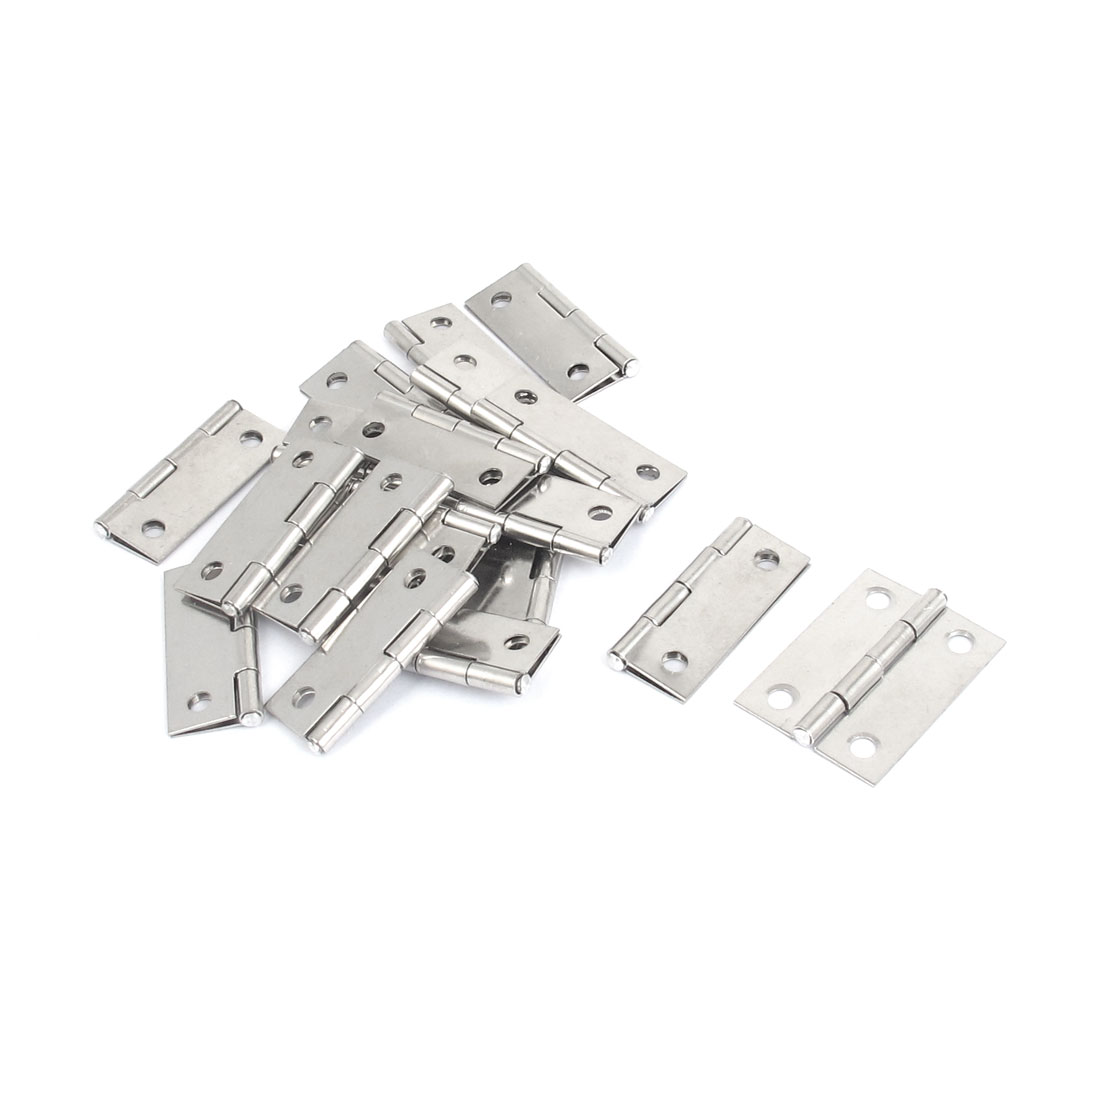 20 Pcs Cupboard Cabinet Furniture Hardware Gate Folding Door Butt Hinges 1.5""